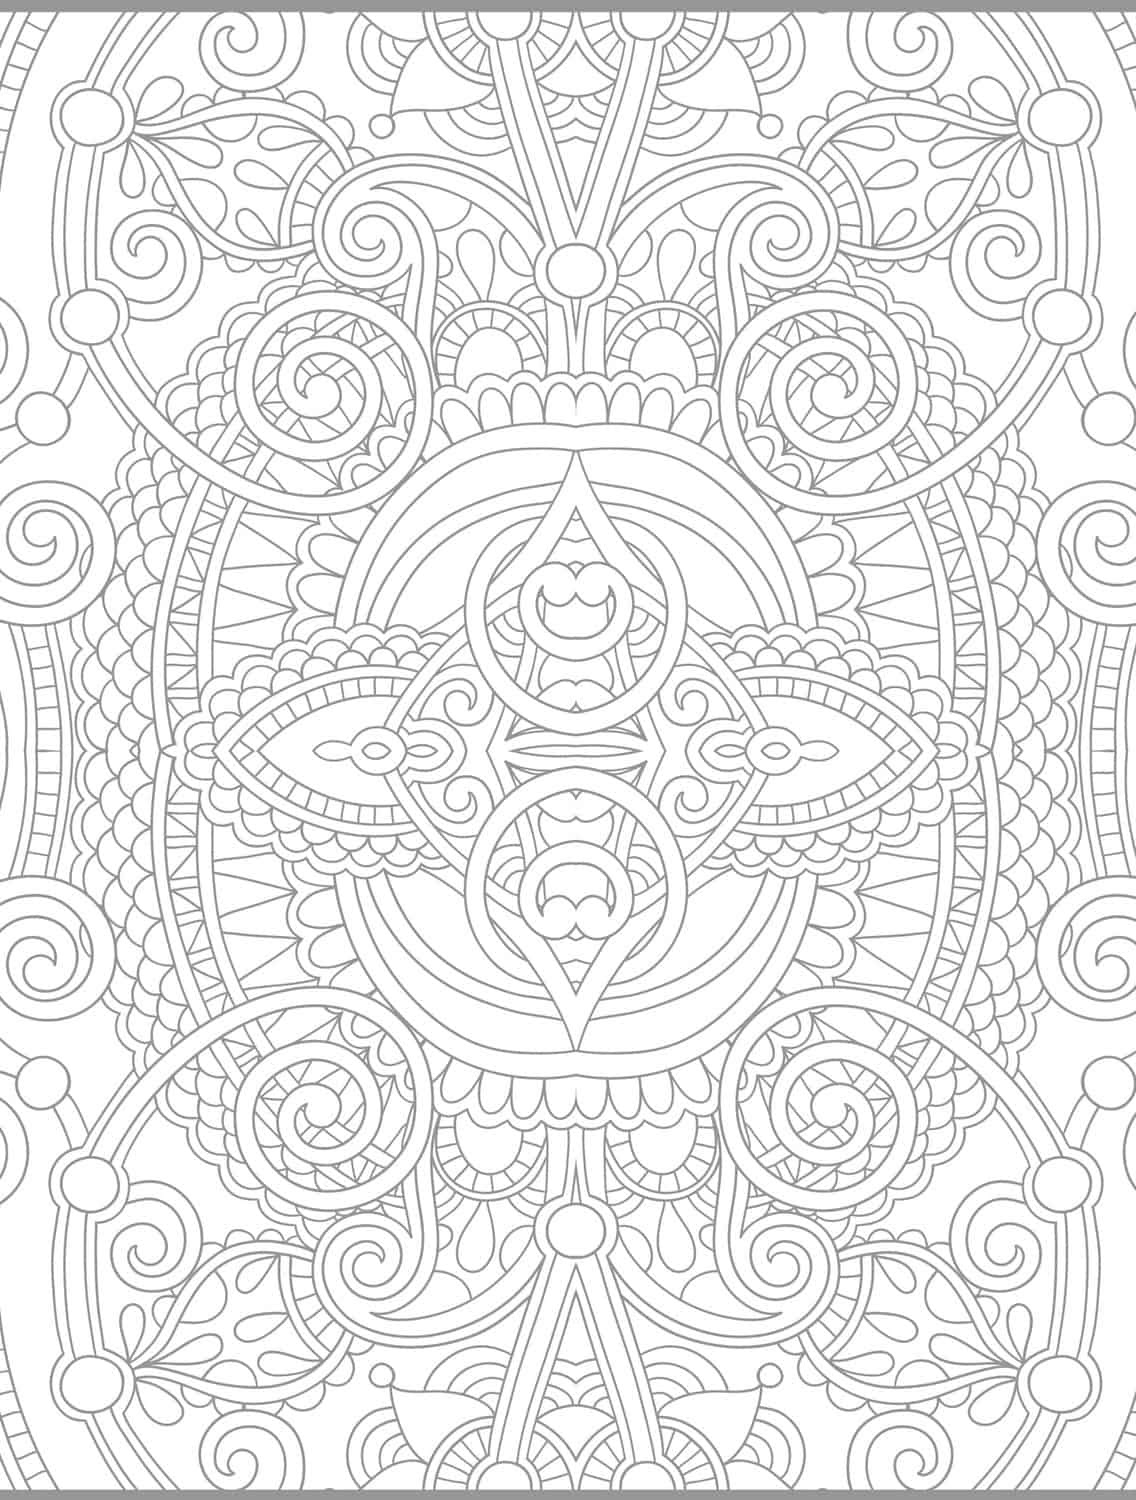 24 More Free Printable Adult Coloring Pages  Page 6 of 25